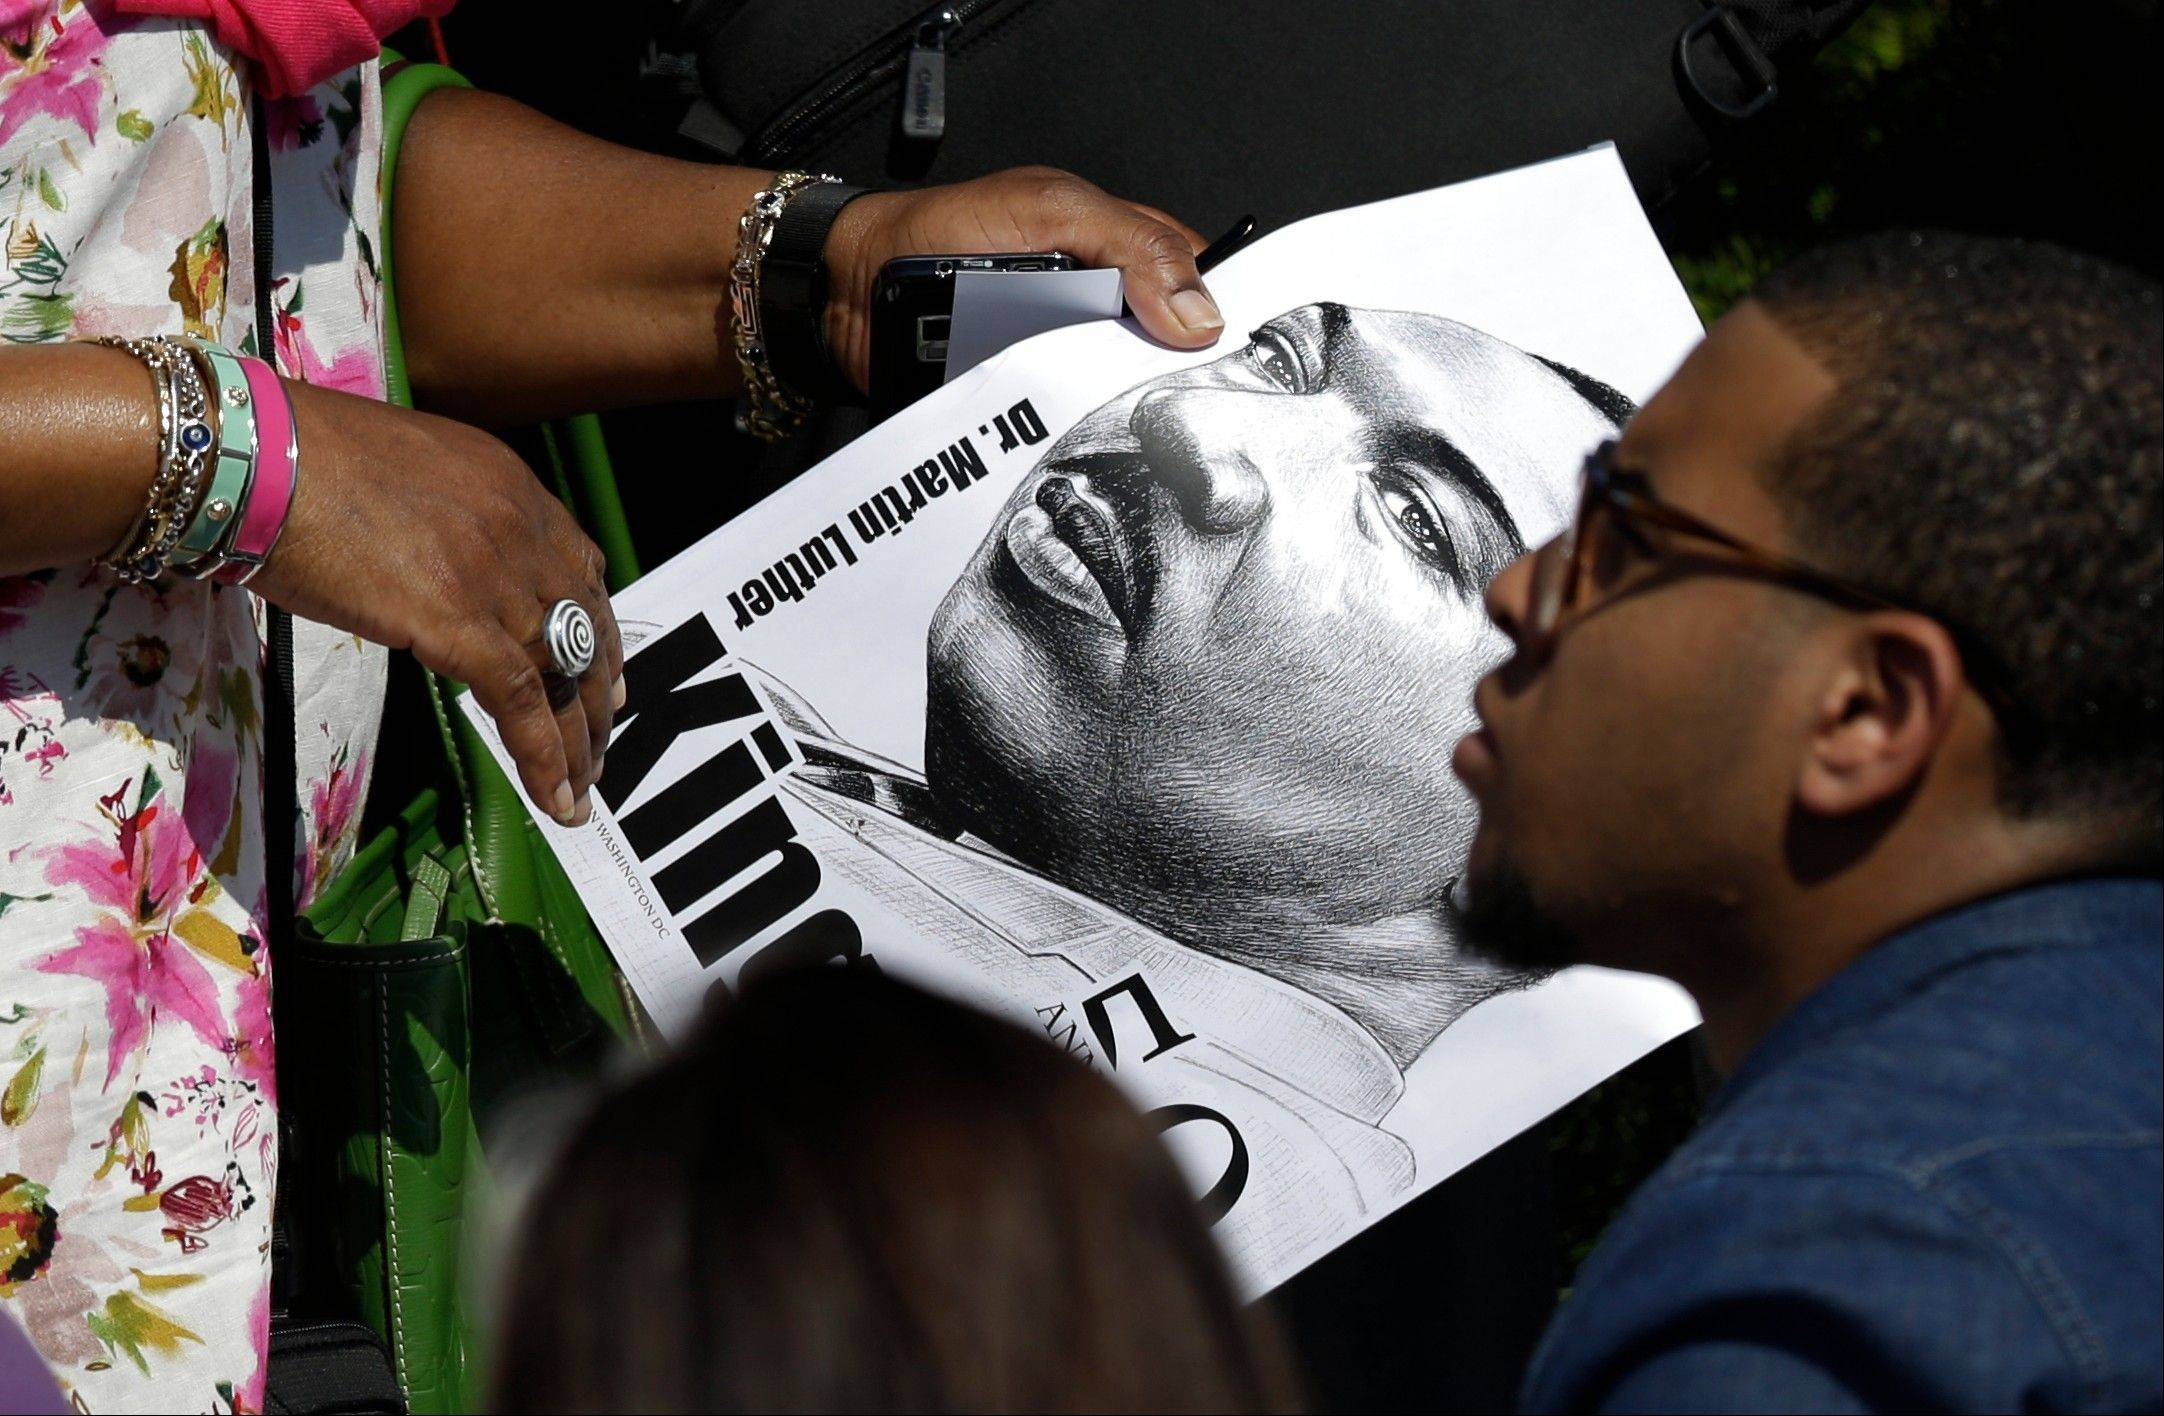 A woman carries a sign with the image of Martin Luther King Jr. on it through the crowd during an event Saturday to commemorate the 50th anniversary of the 1963 March on Washington at the Lincoln Memorialn Washington.